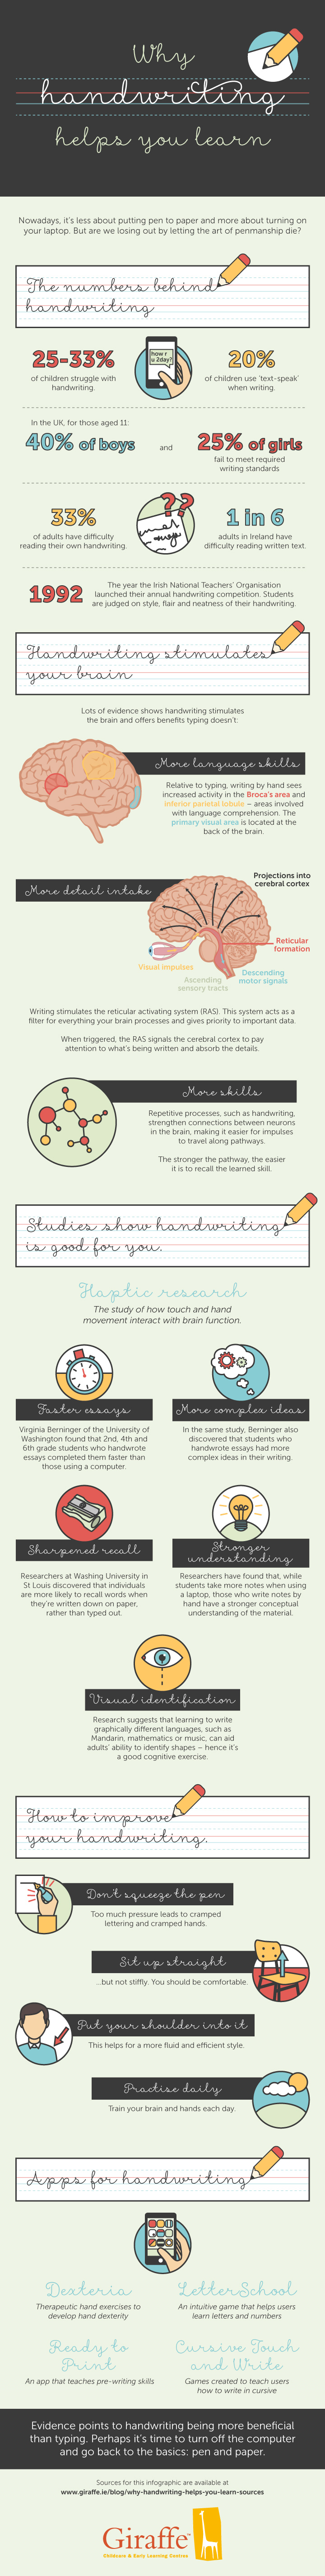 The Impact of Handwriting on Learning